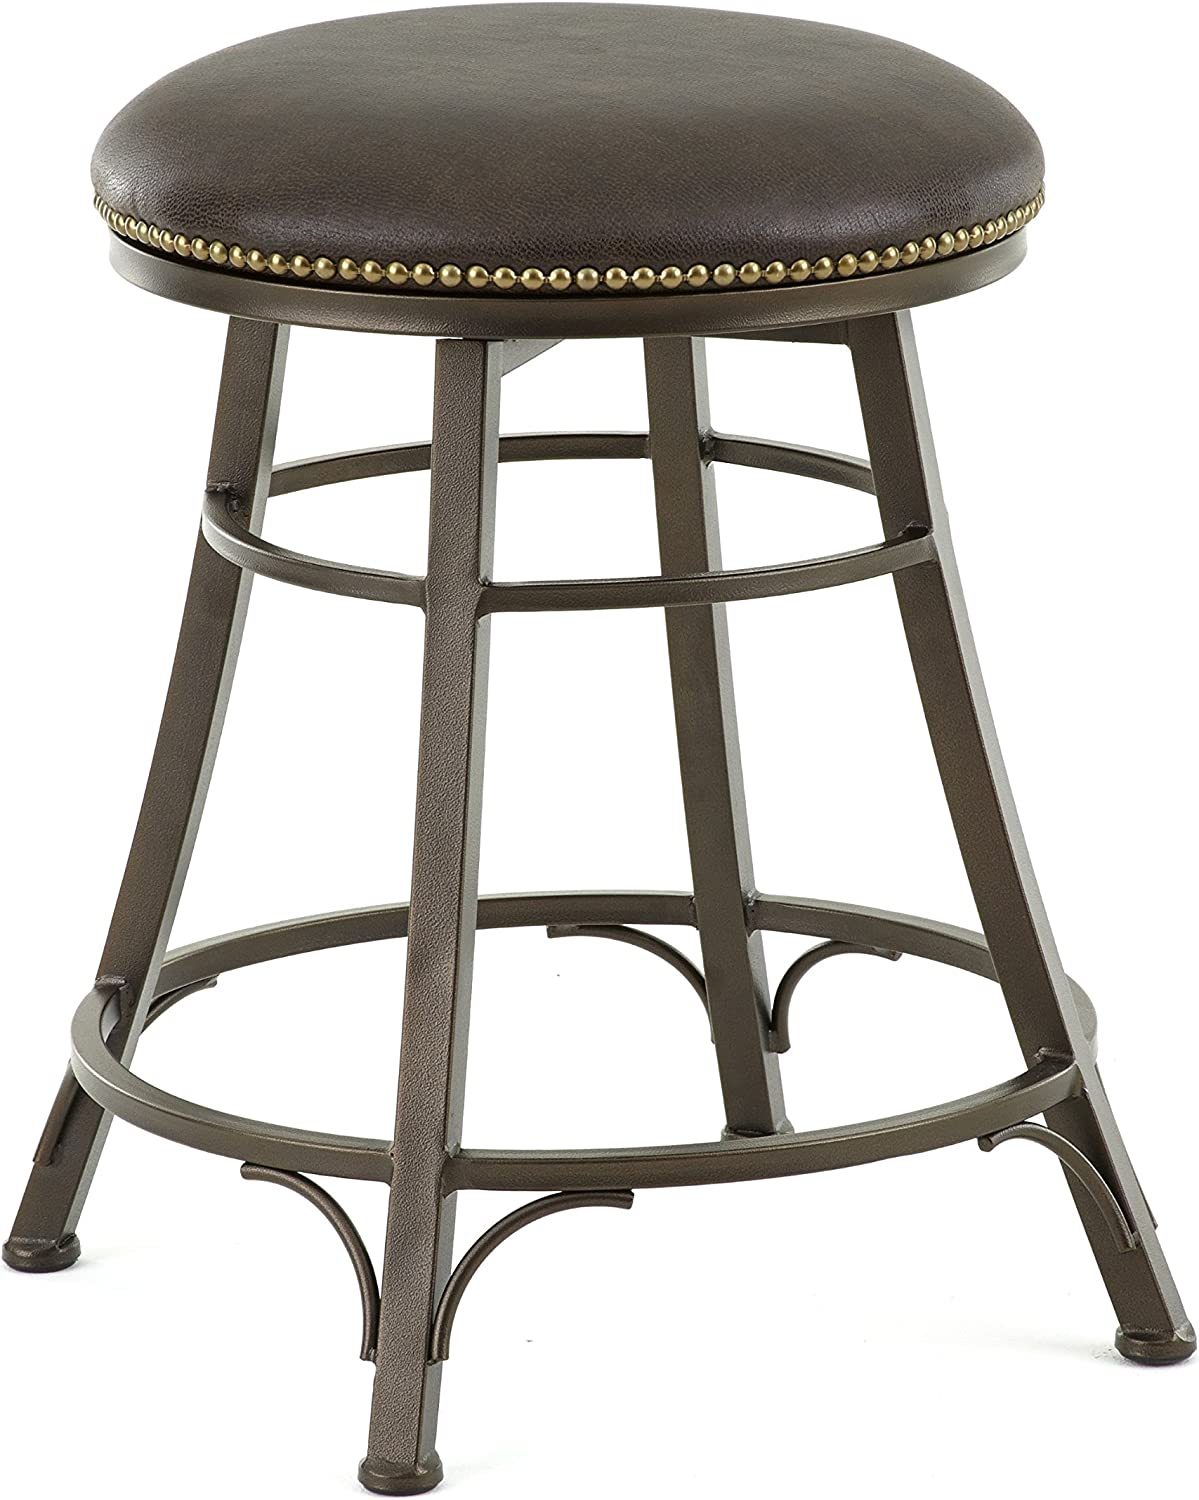 Steve Silver Company Bali Backless Swivel Counter Stool, 18 W x 18 D x 24 H